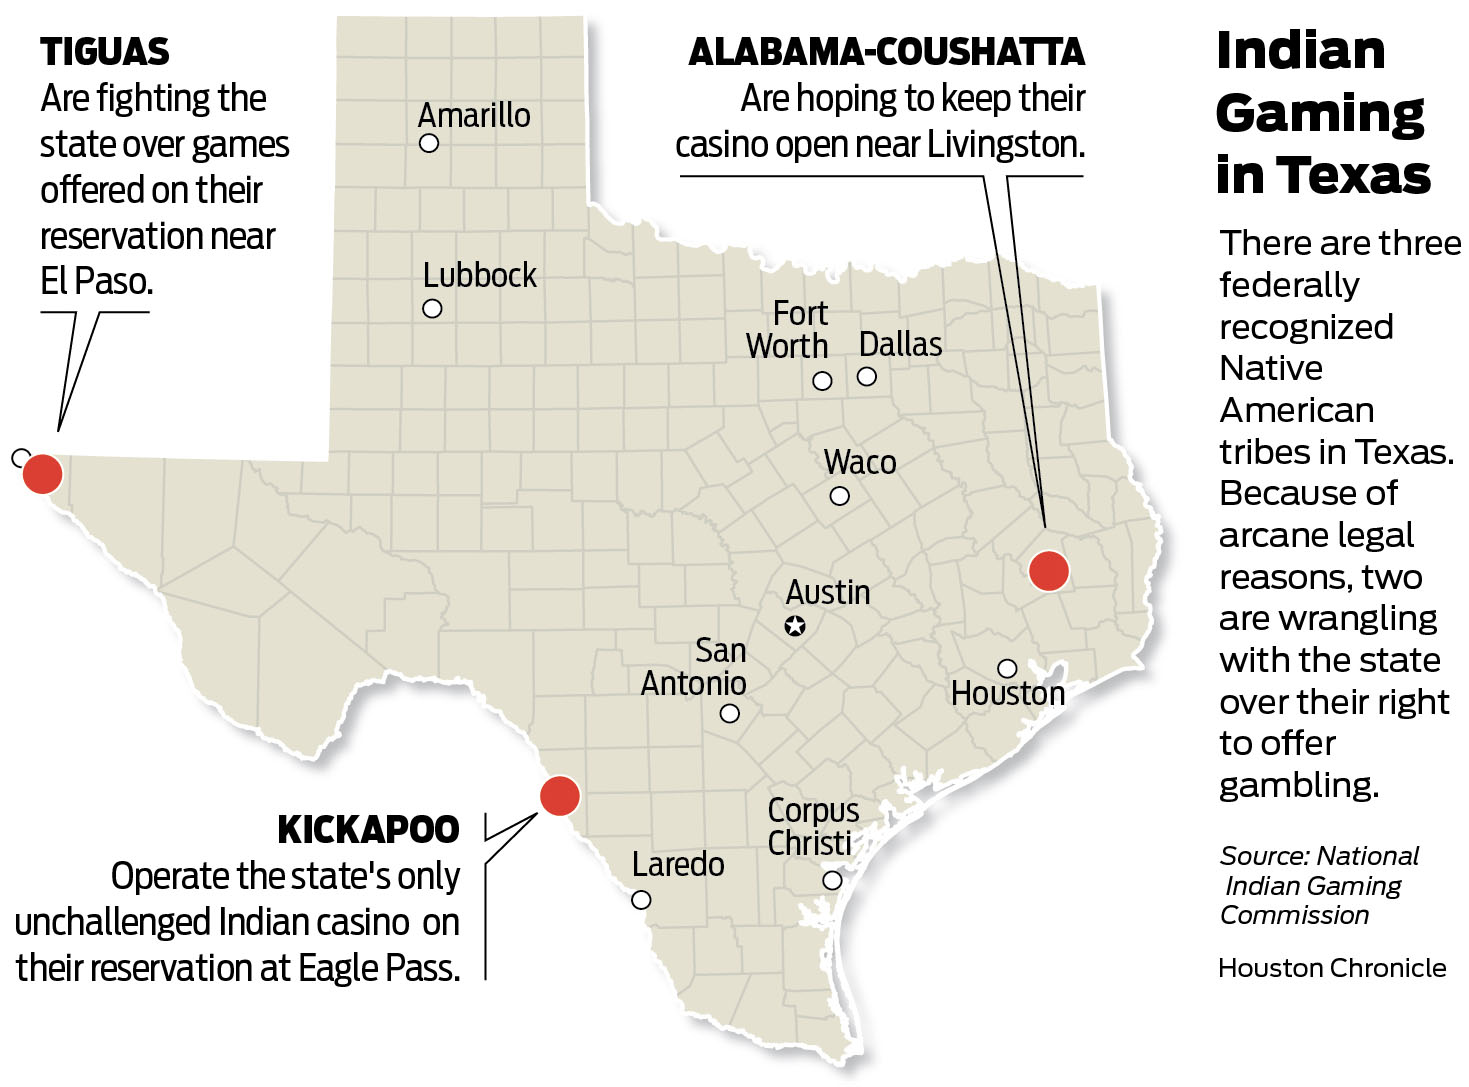 Alabama-Coushatta tribe fights for right to a gaming center